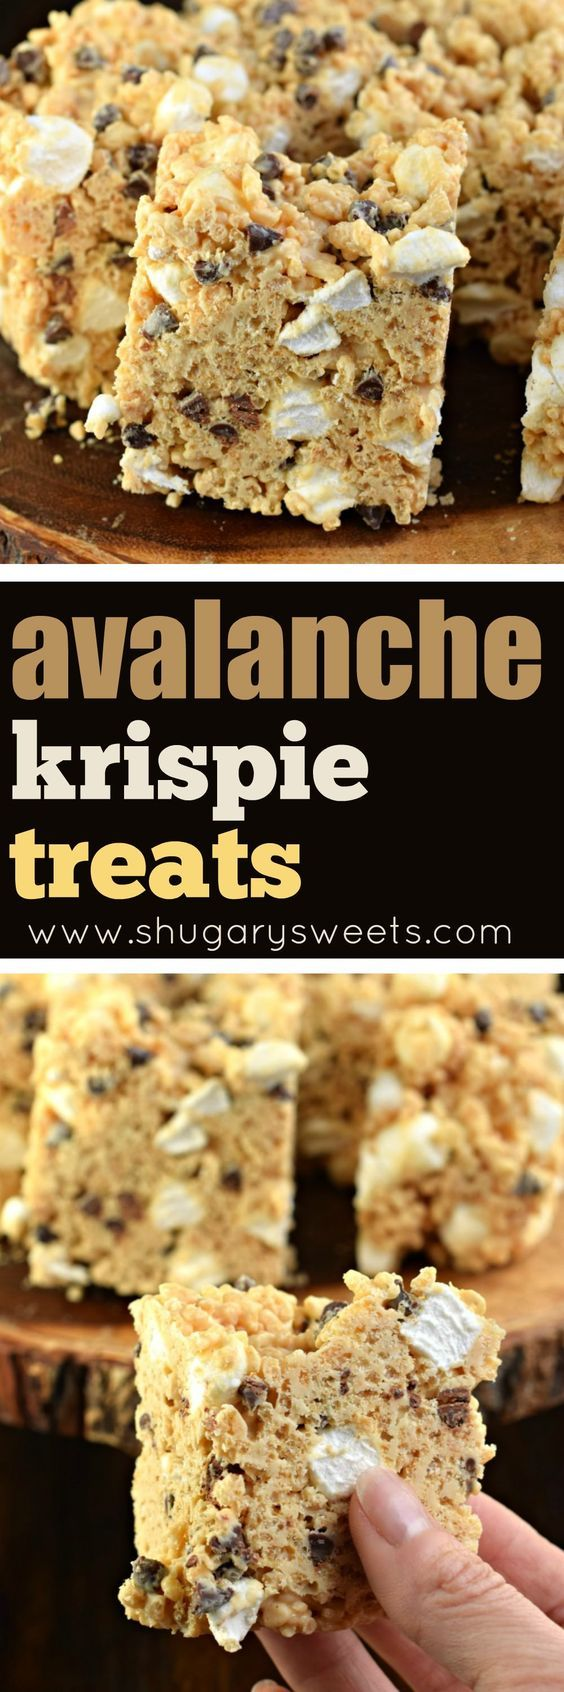 Avalanche Krispie Treats are made with peanut butter and white chocolate. Melt in your mouth, chewy and delicious!